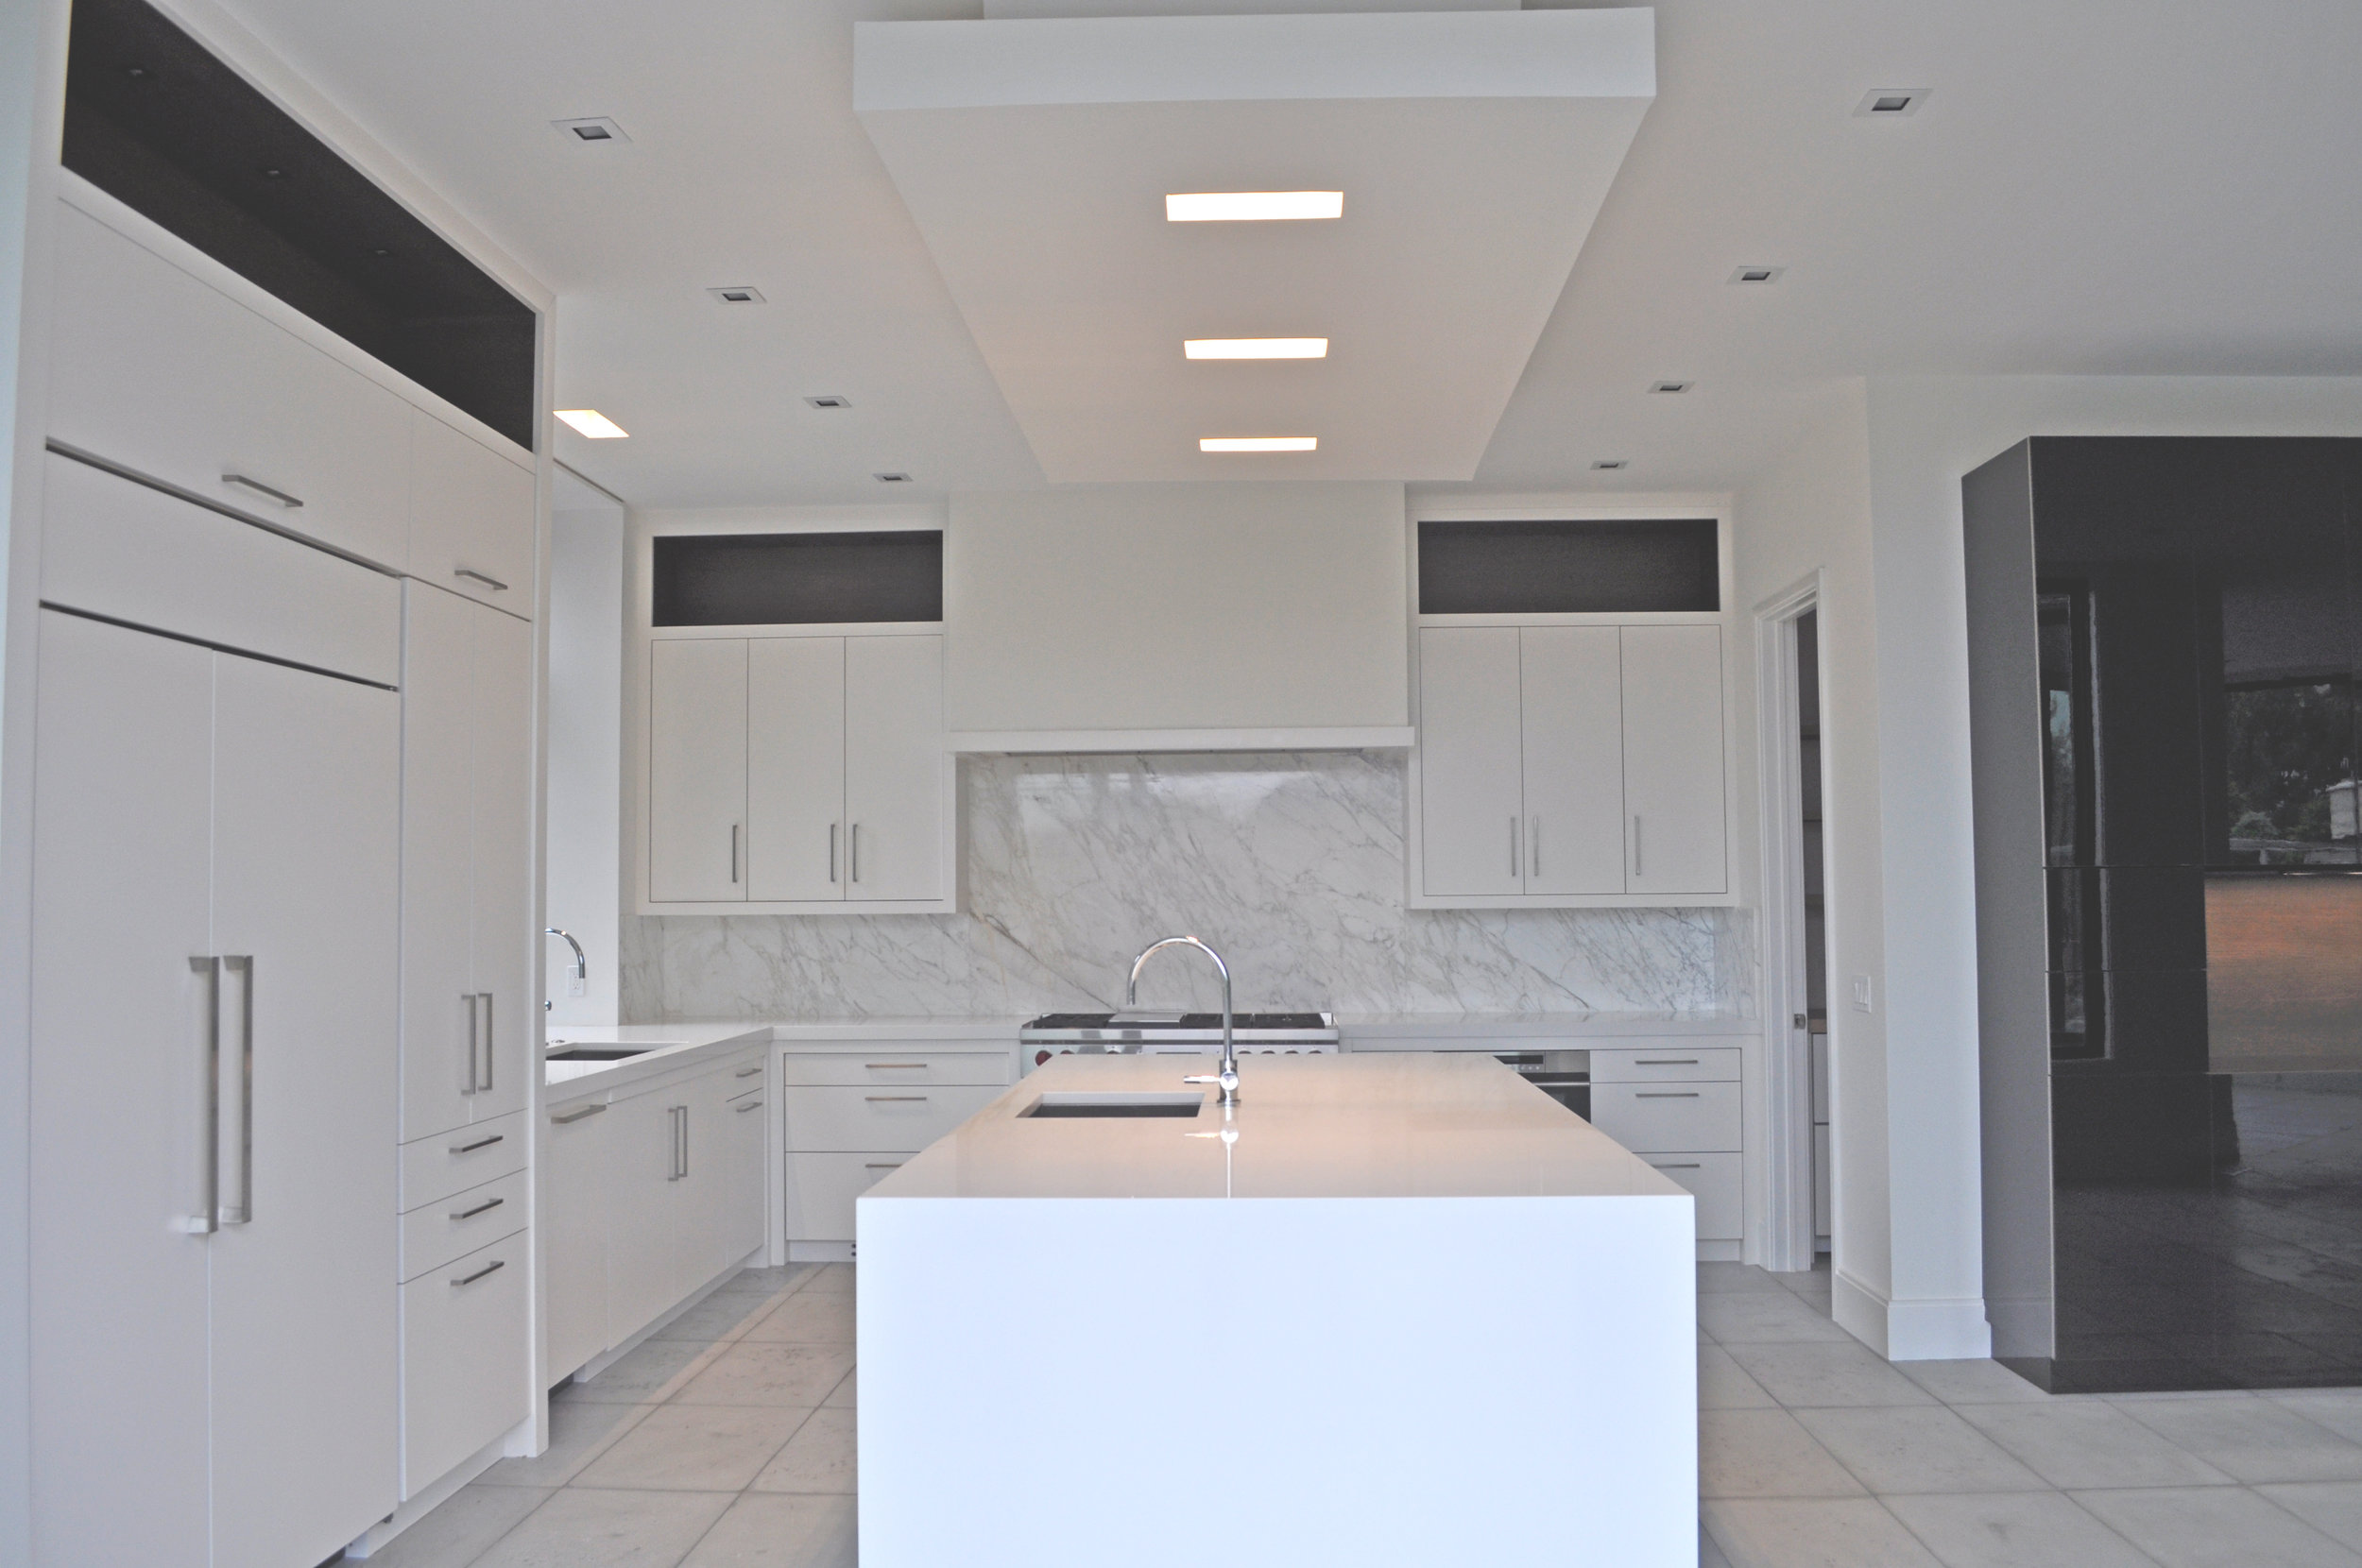 Kitchen for For Milton Development with Laura Kaehler Architects and Rebecka Hekmat